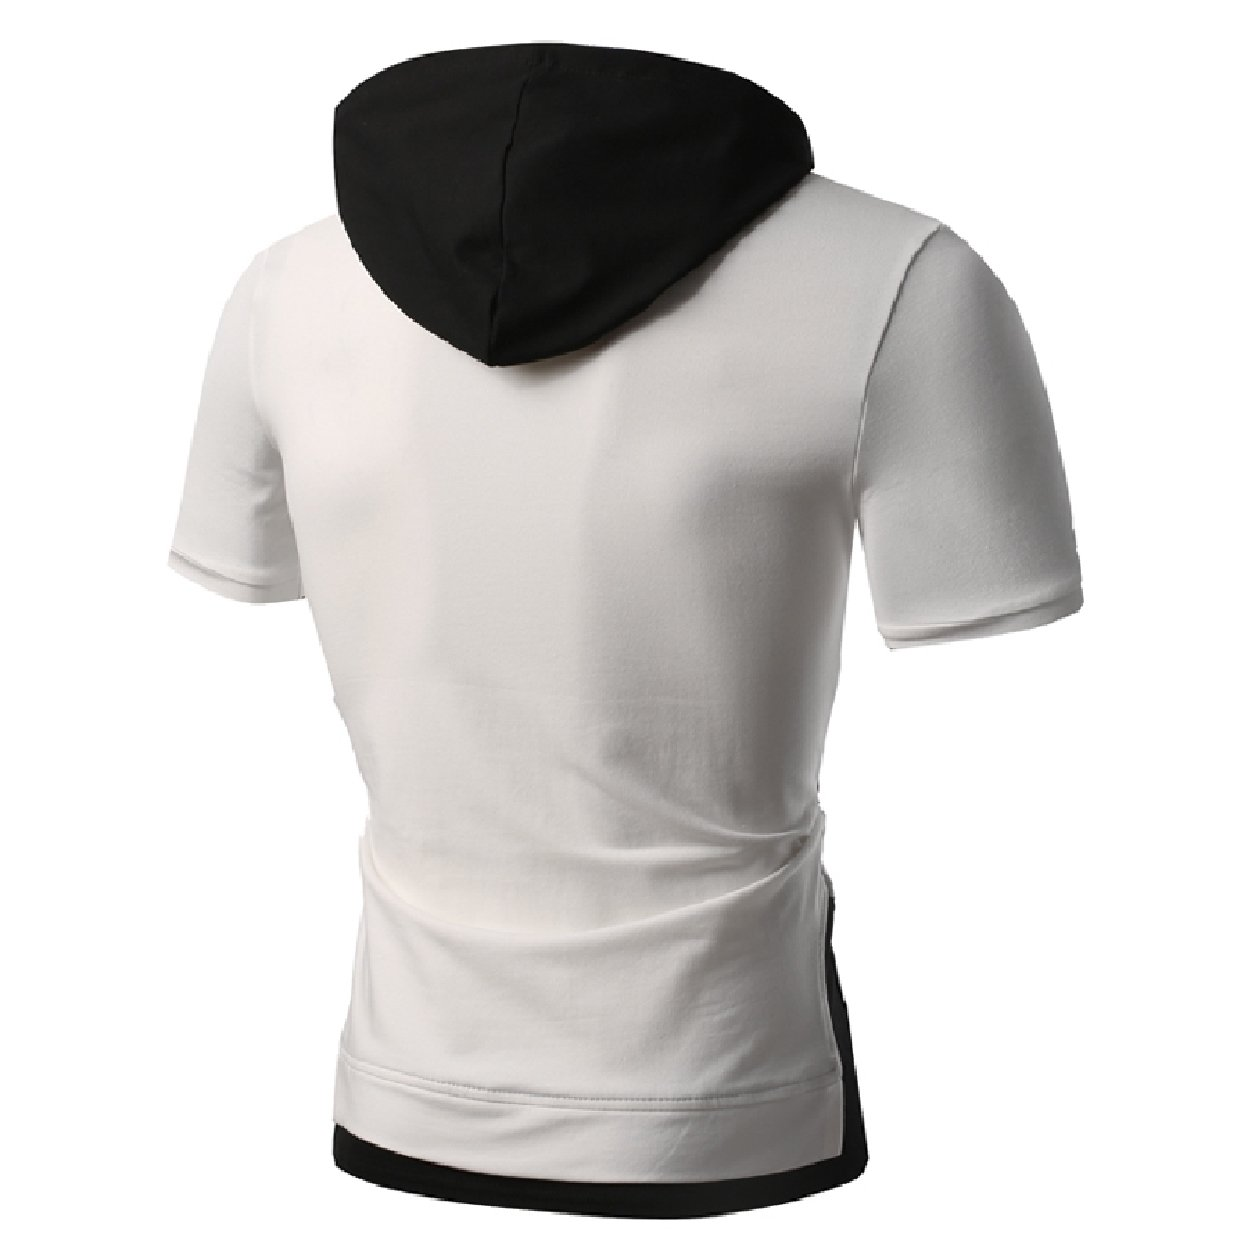 Whitive Men Short-Sleeve Athletic Fake Two Pieces Back Cotton Tees Top